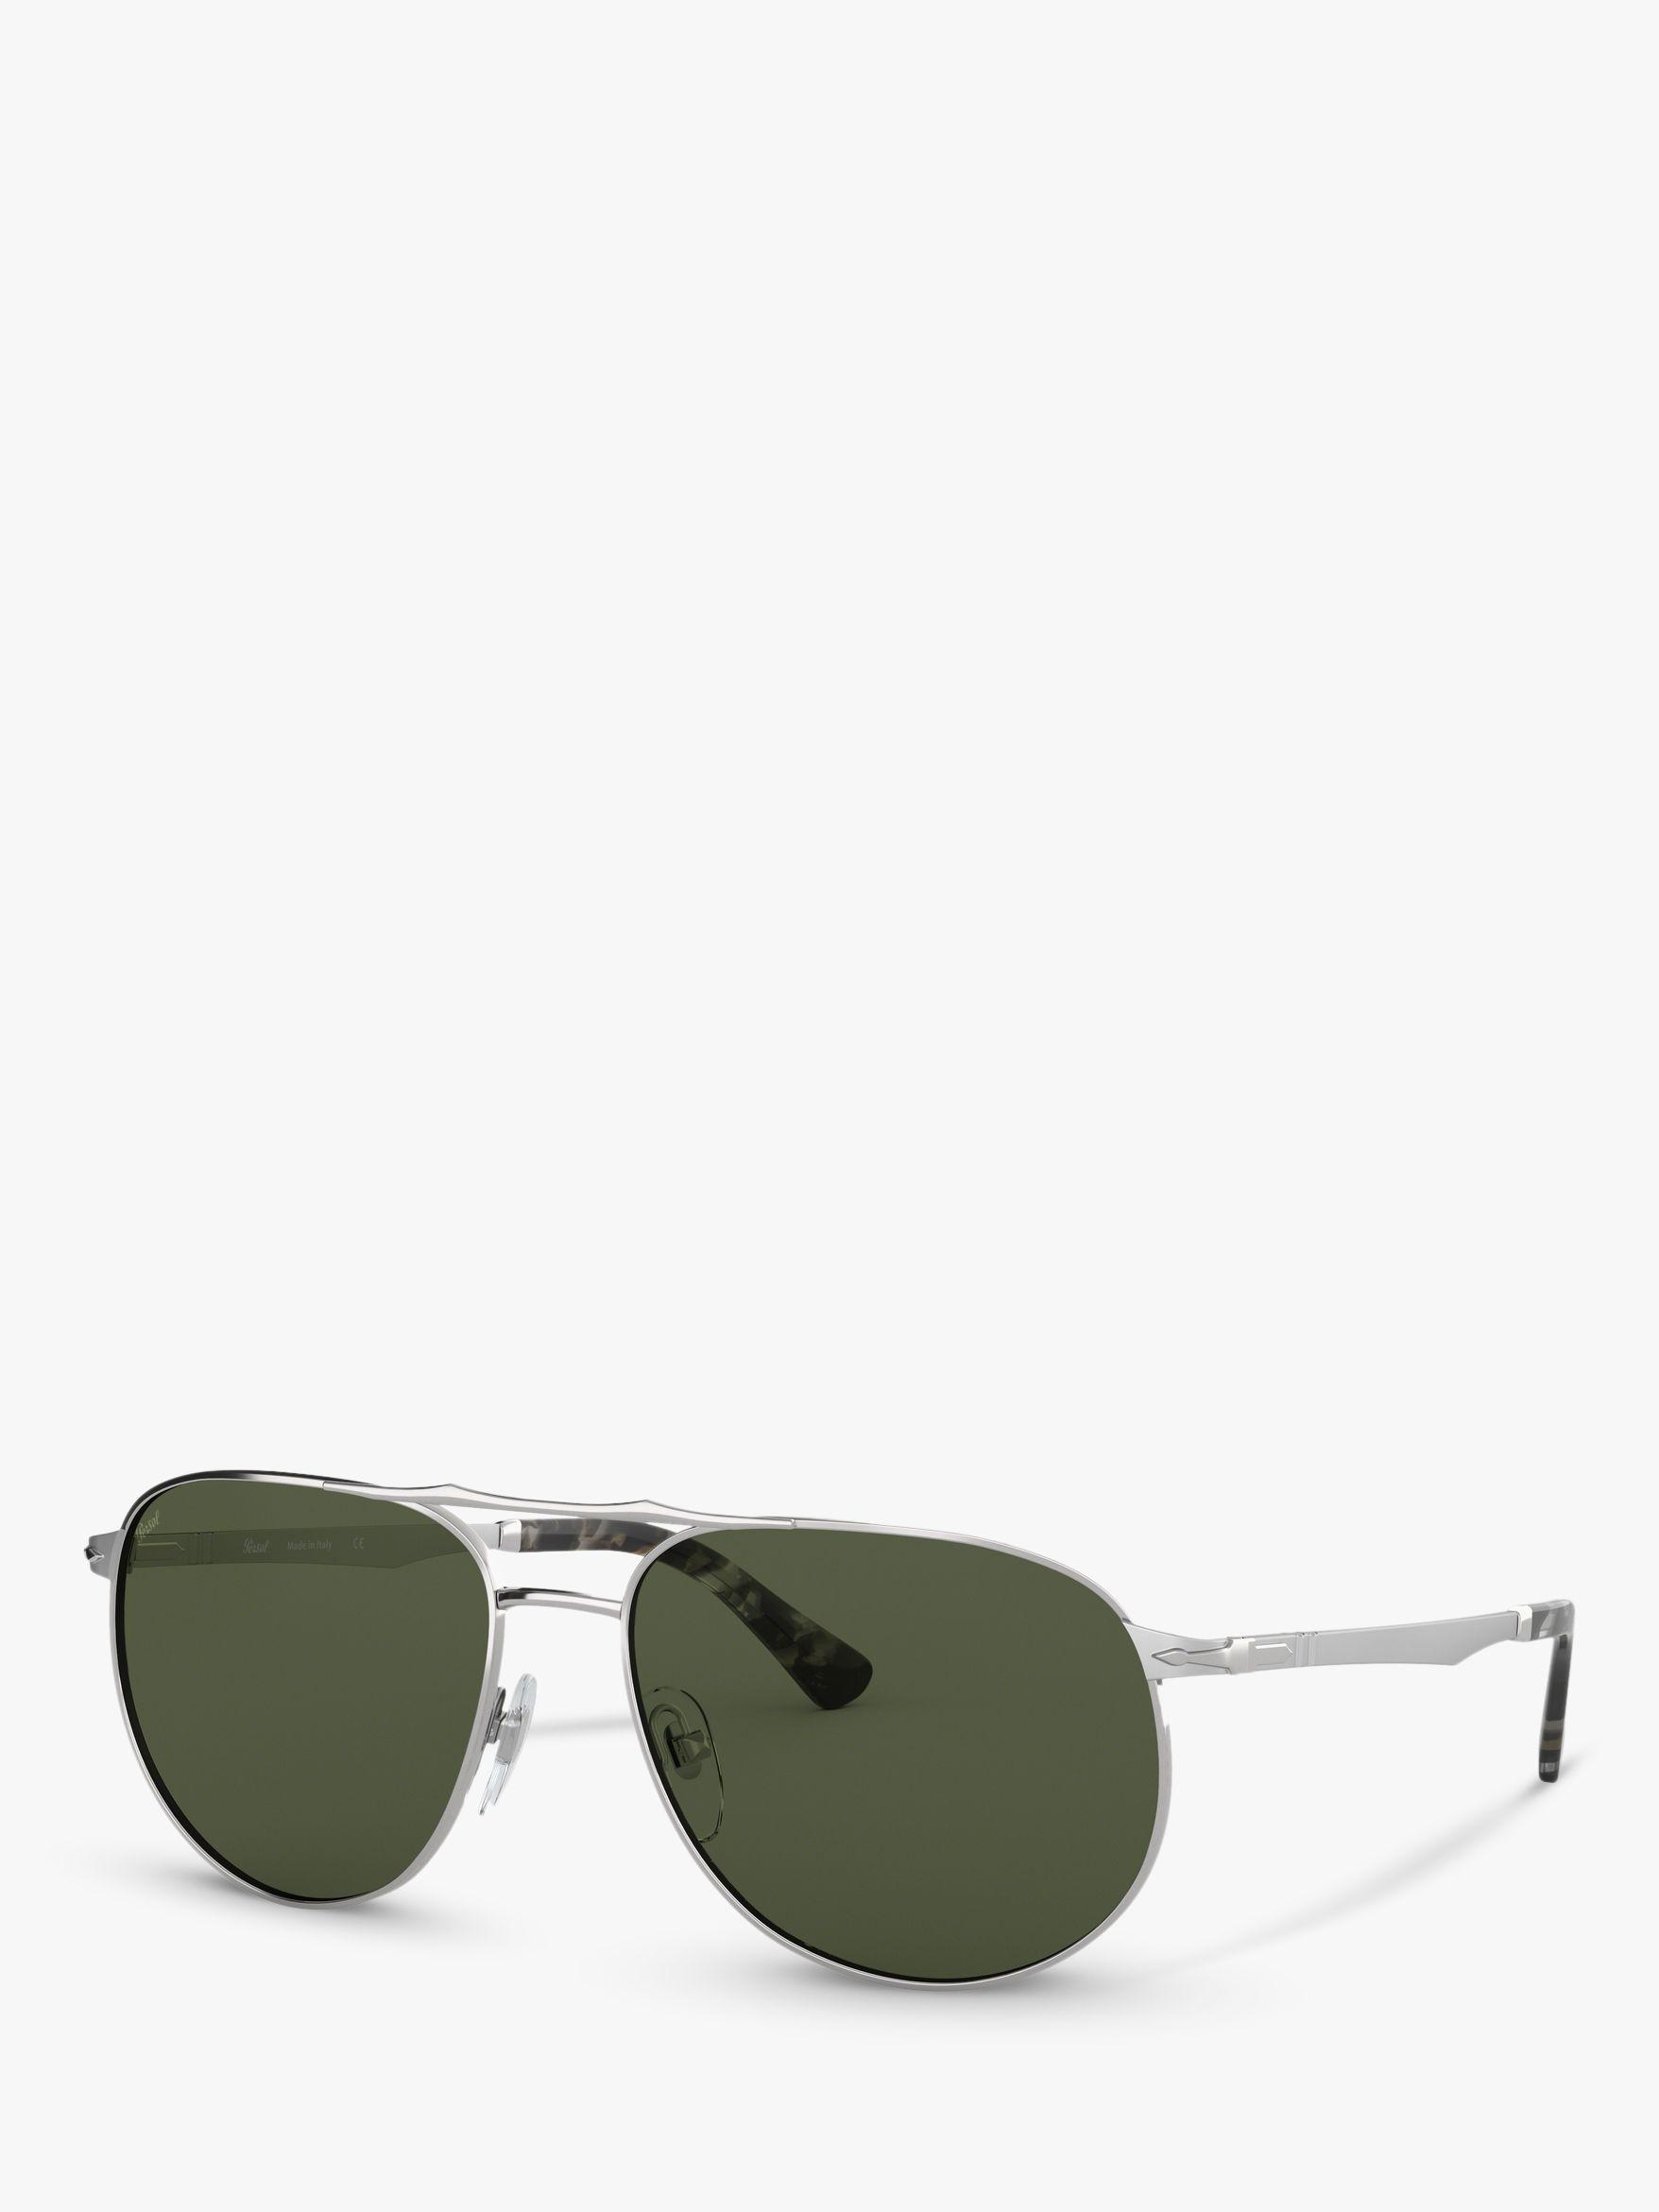 963f84588a50 Persol. Green Po2455s Men's Oval Sunglasses. £214 From John Lewis and  Partners